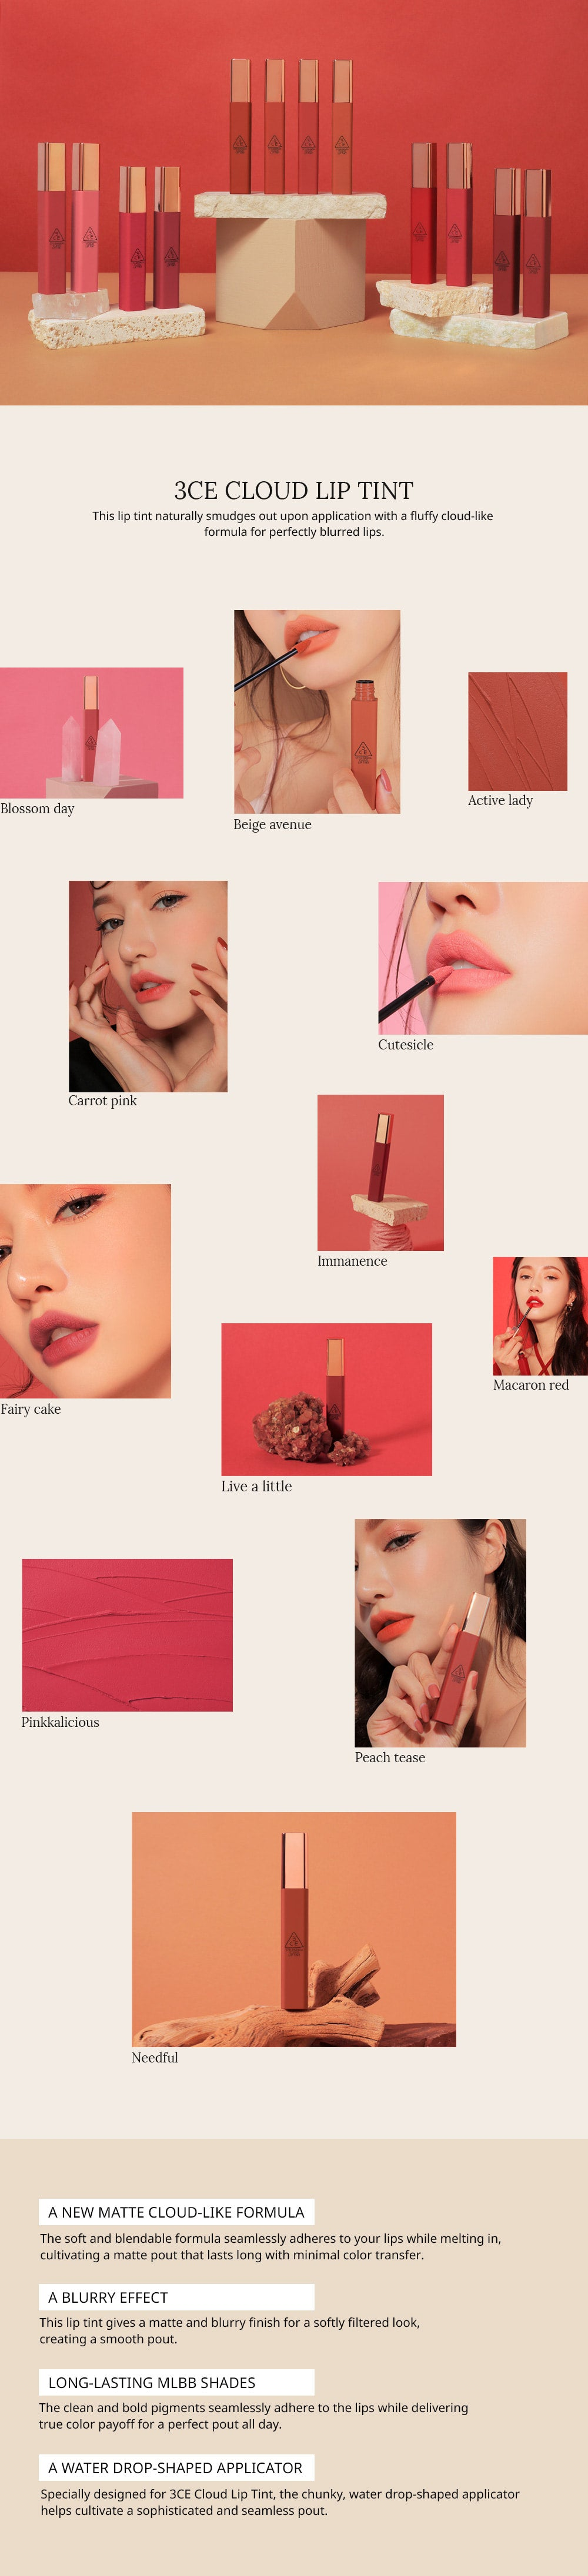 3CE Cloud Lip Tint Glam Touch UK